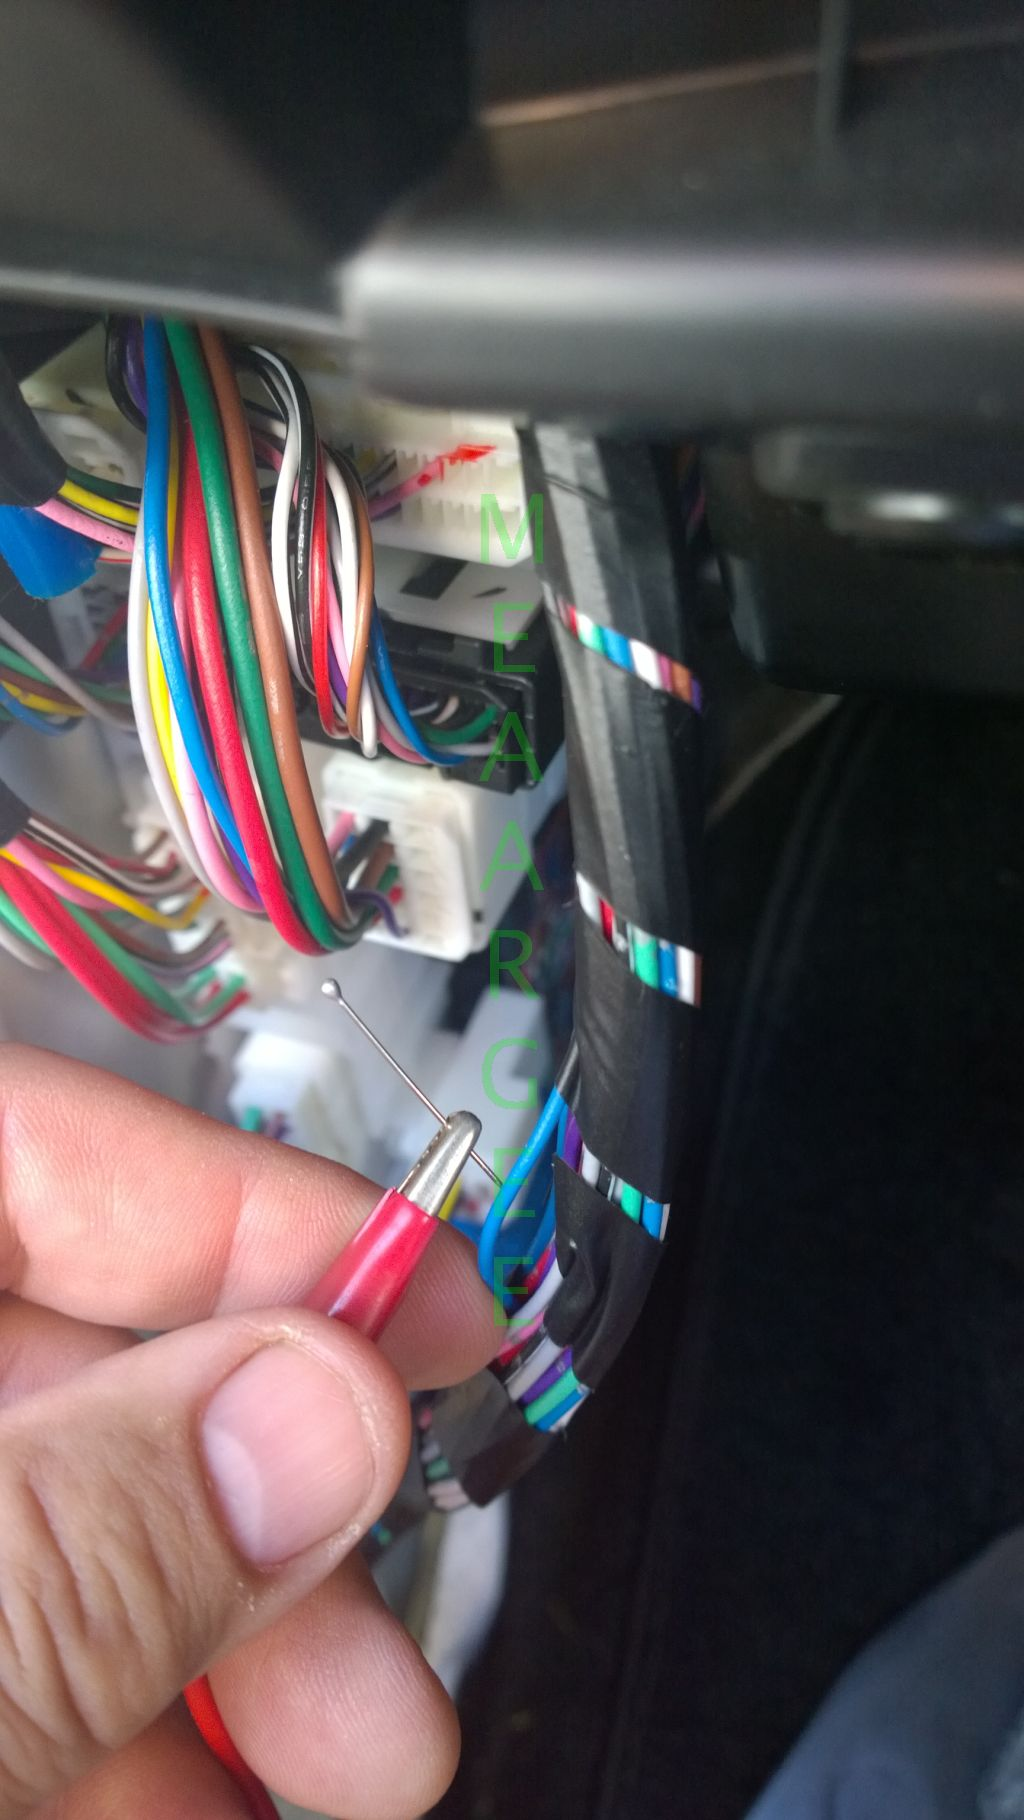 Hacking The Electronics Engineers Shed 2001 Mitsubishi Galant Es Fuse Box Finding Reverse Wire Wm